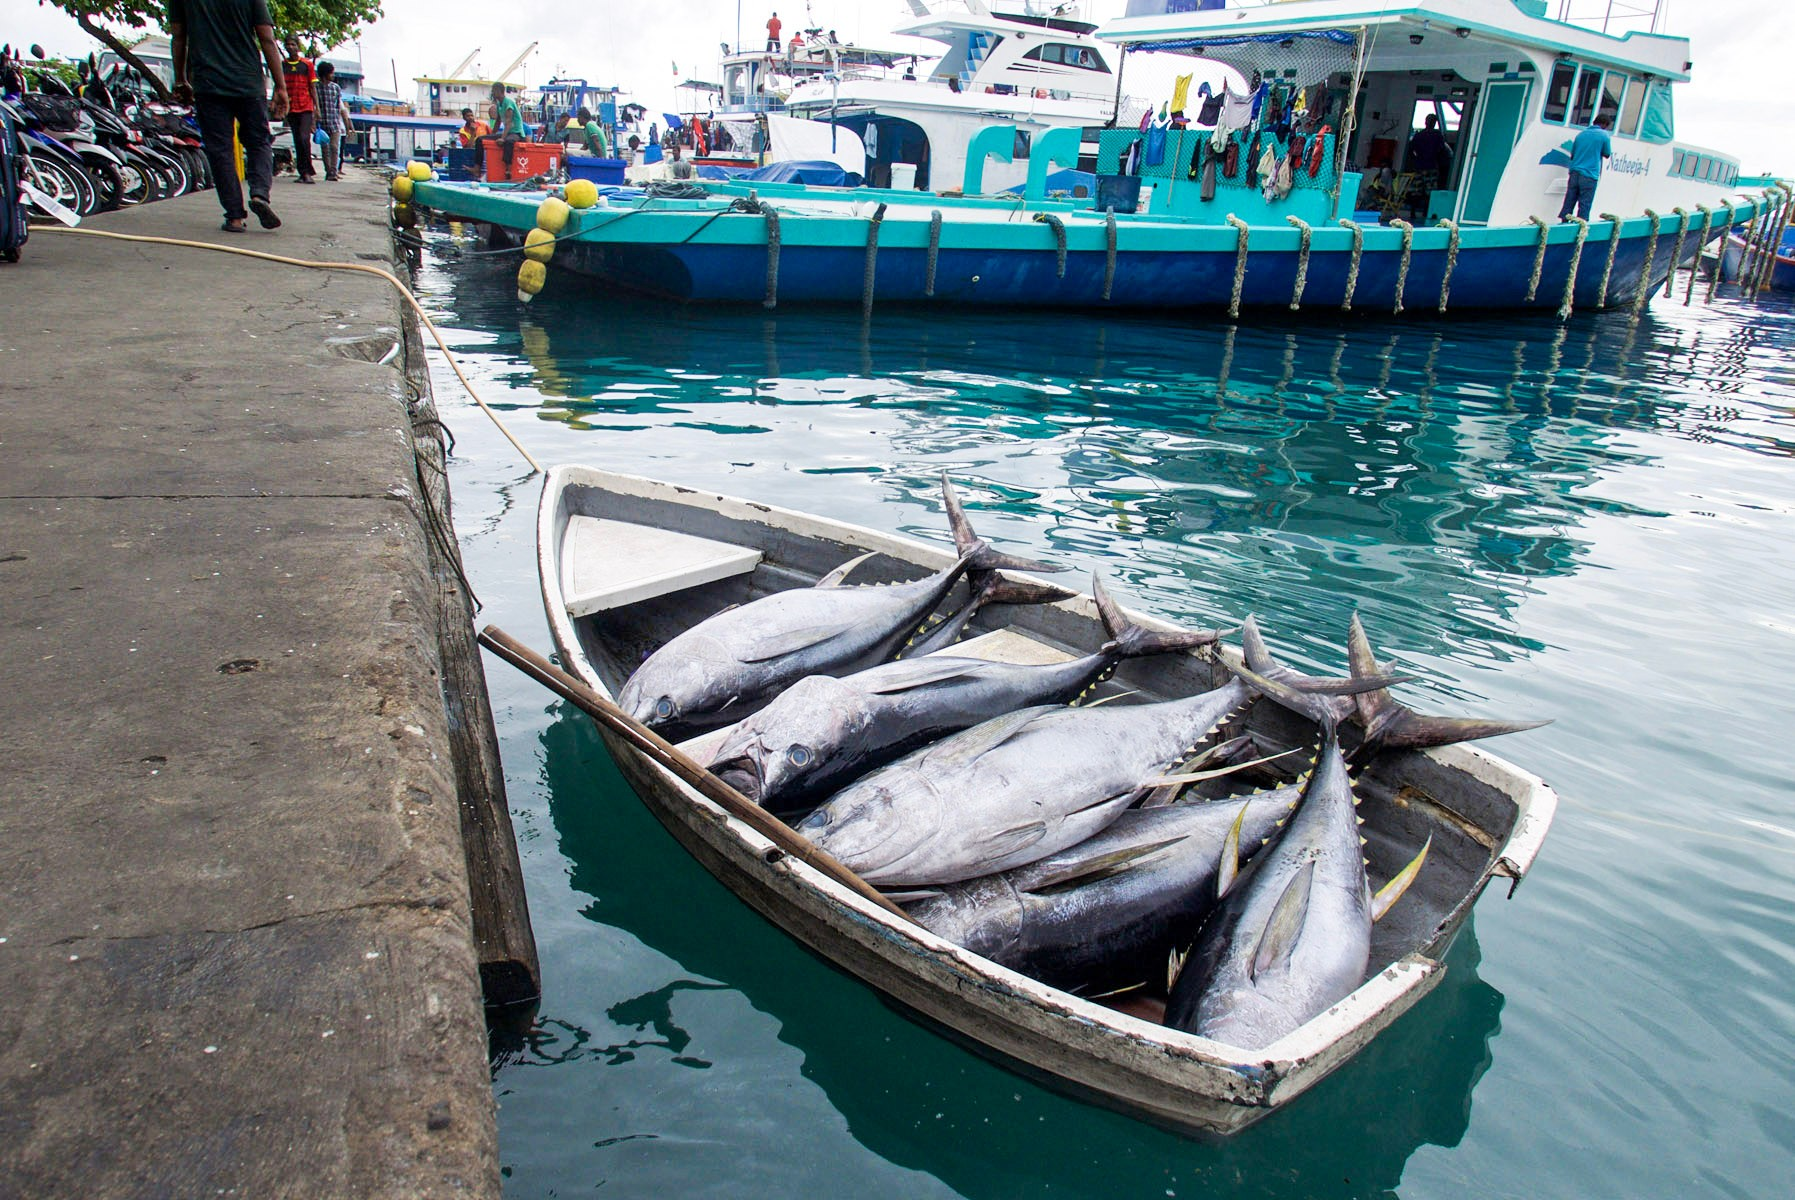 It's All About the Tuna at this Fish Market in the Maldives